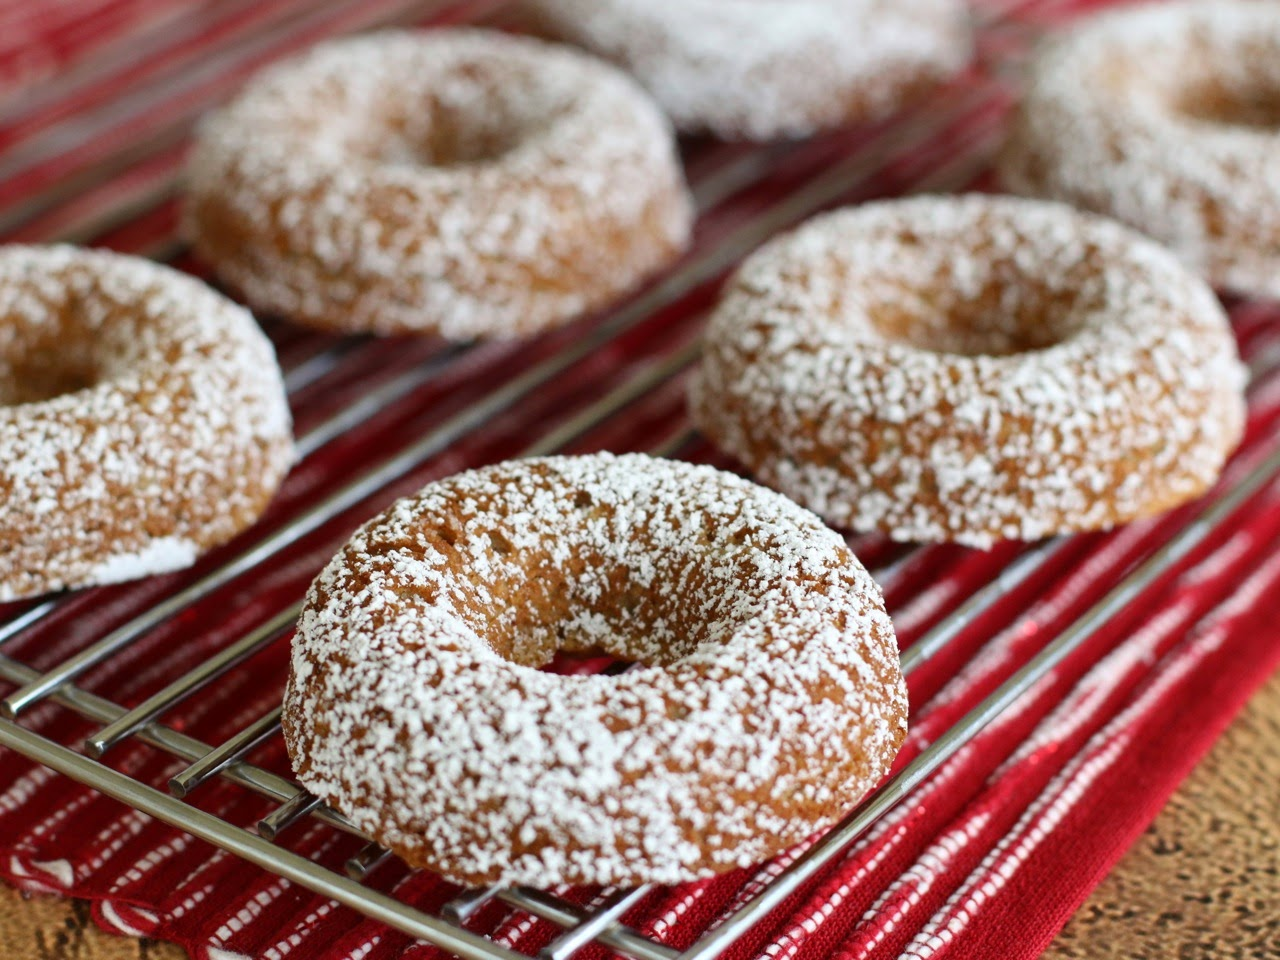 Donuts-Sugared